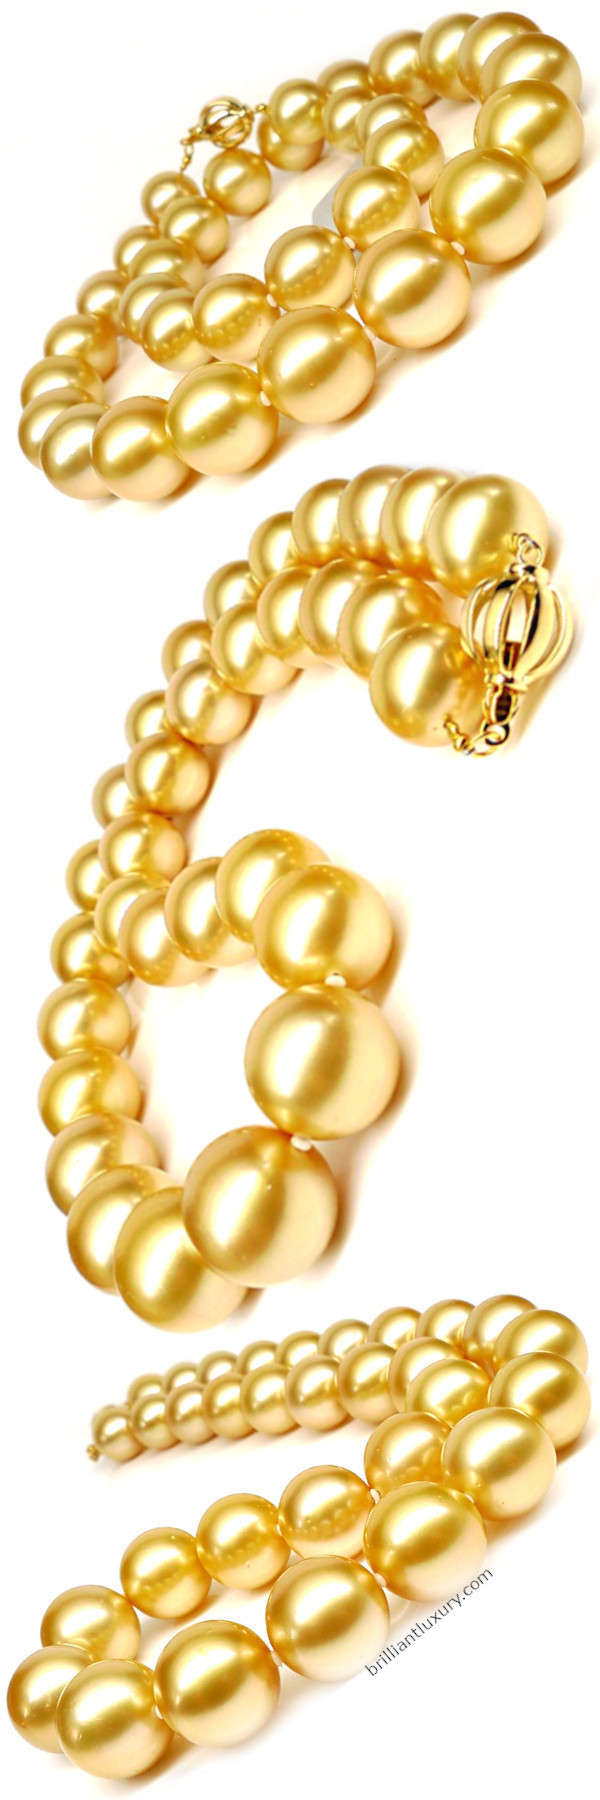 Yellow south sea pearl necklace